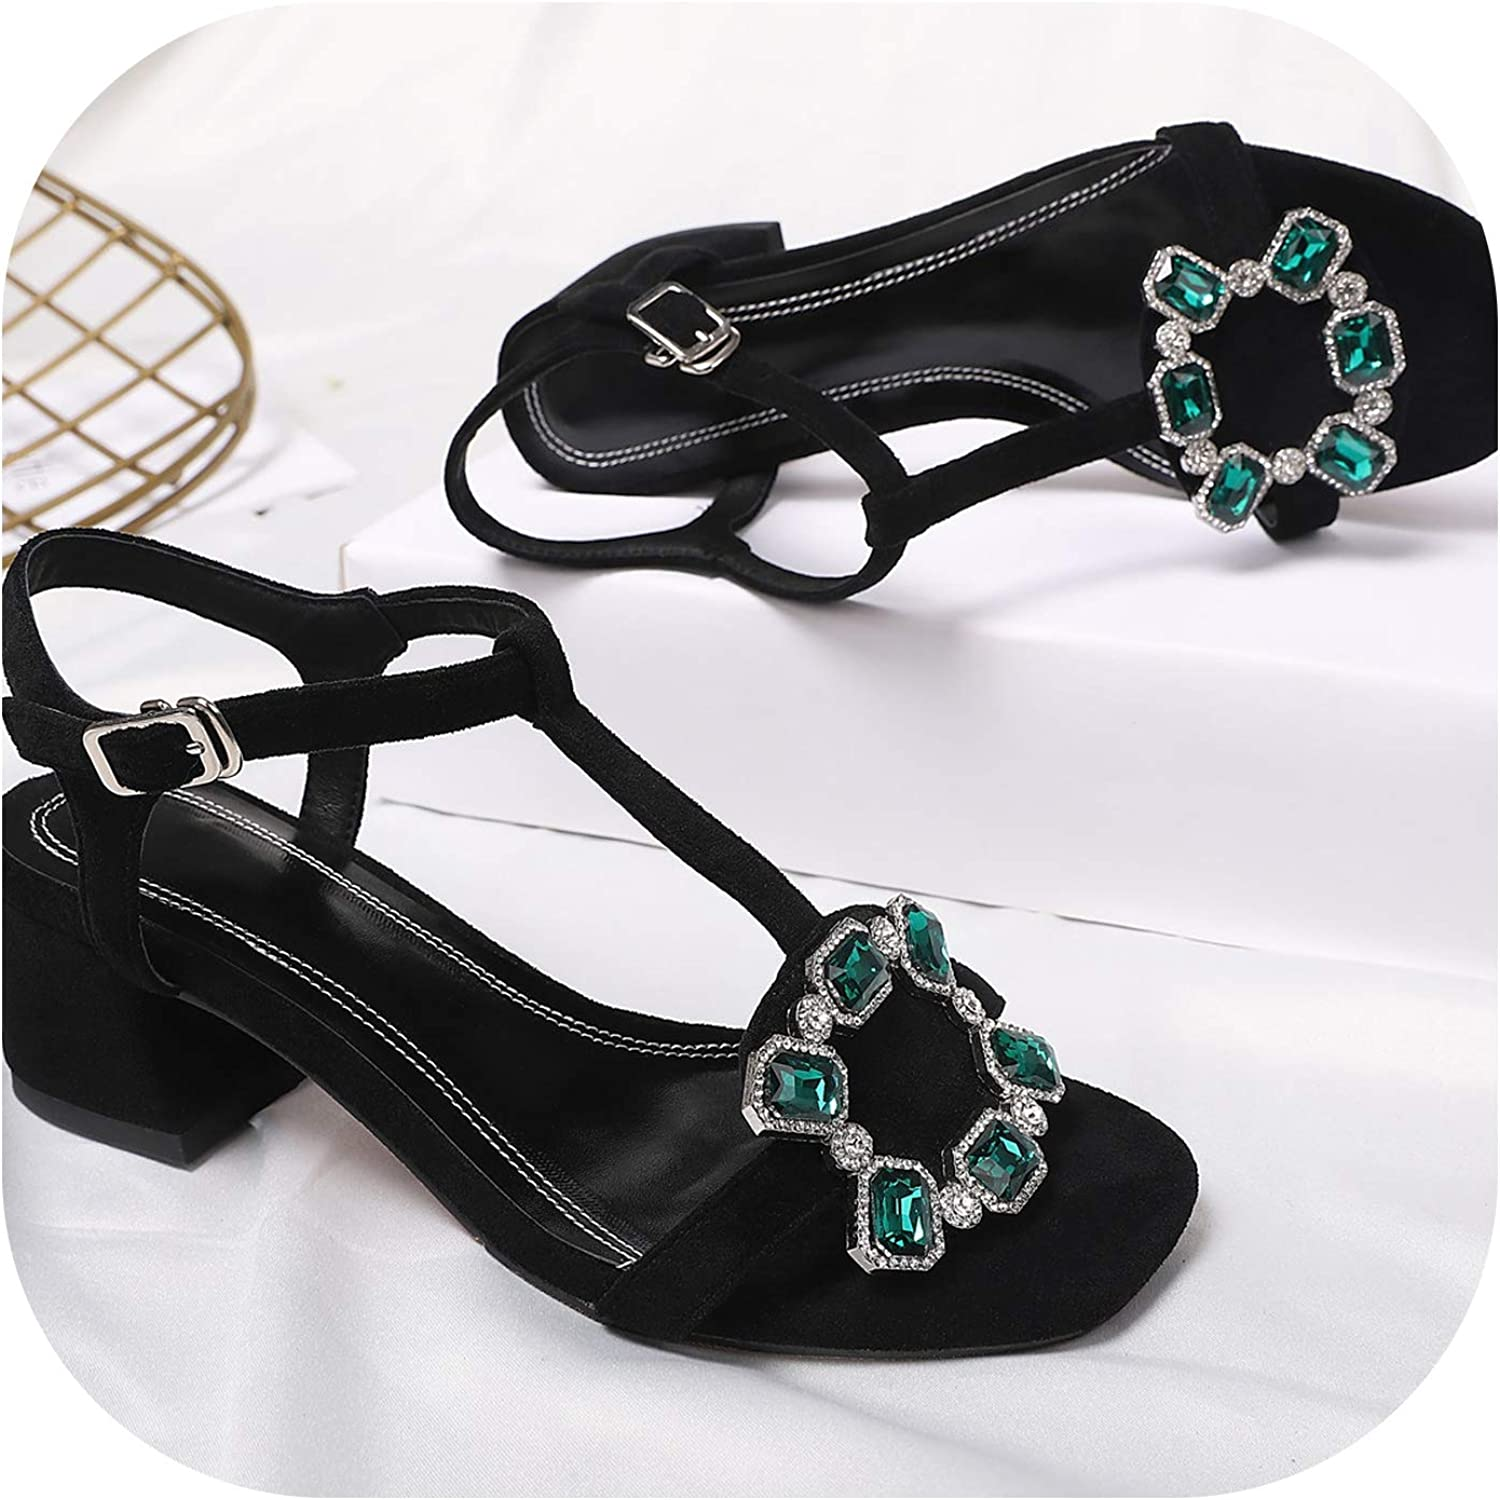 New Recommended Summer Sheepskin Rare Suede Leather Solid Color Rhi Sandals Women